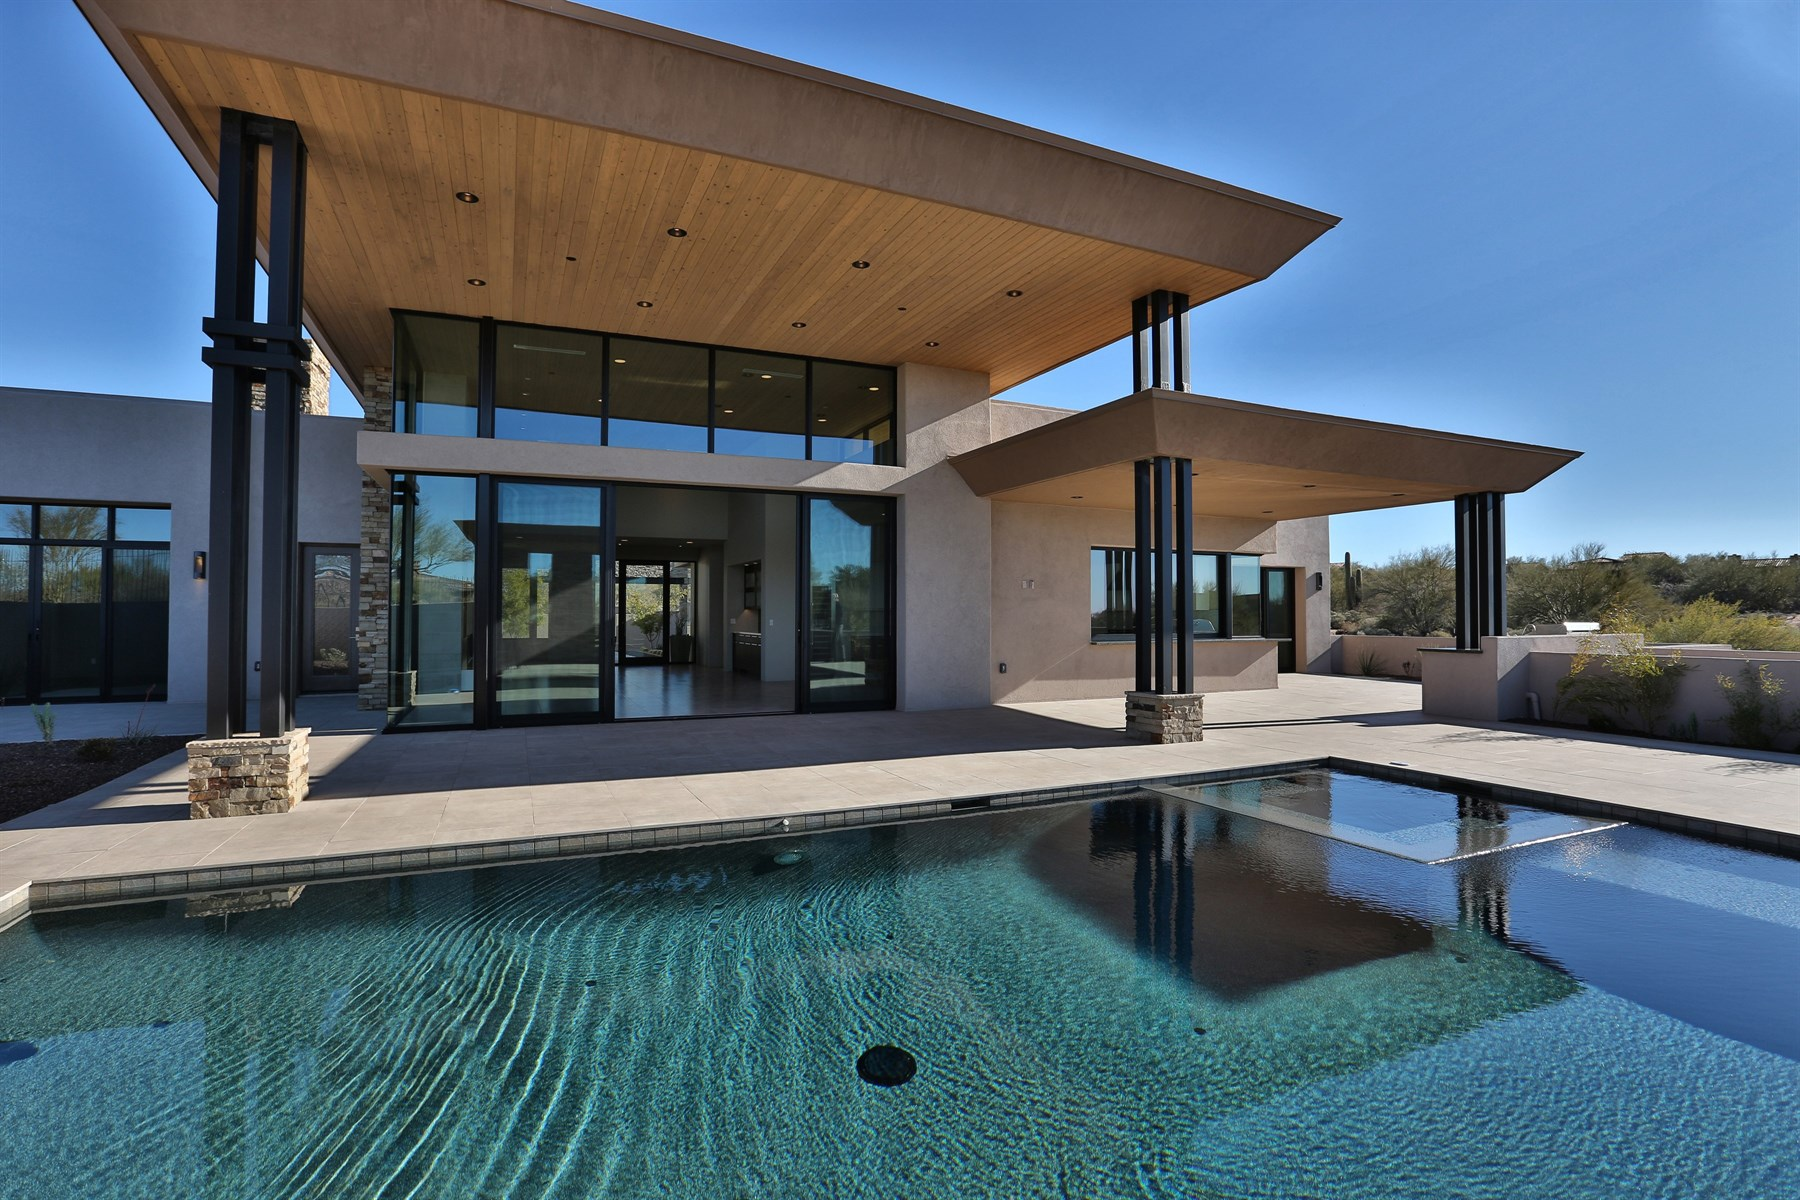 一戸建て のために 売買 アット State Of The Art Glass And Water Contemporary Luxury New Build 10361 E Rising Sun Drive Scottsdale, アリゾナ, 85262 アメリカ合衆国